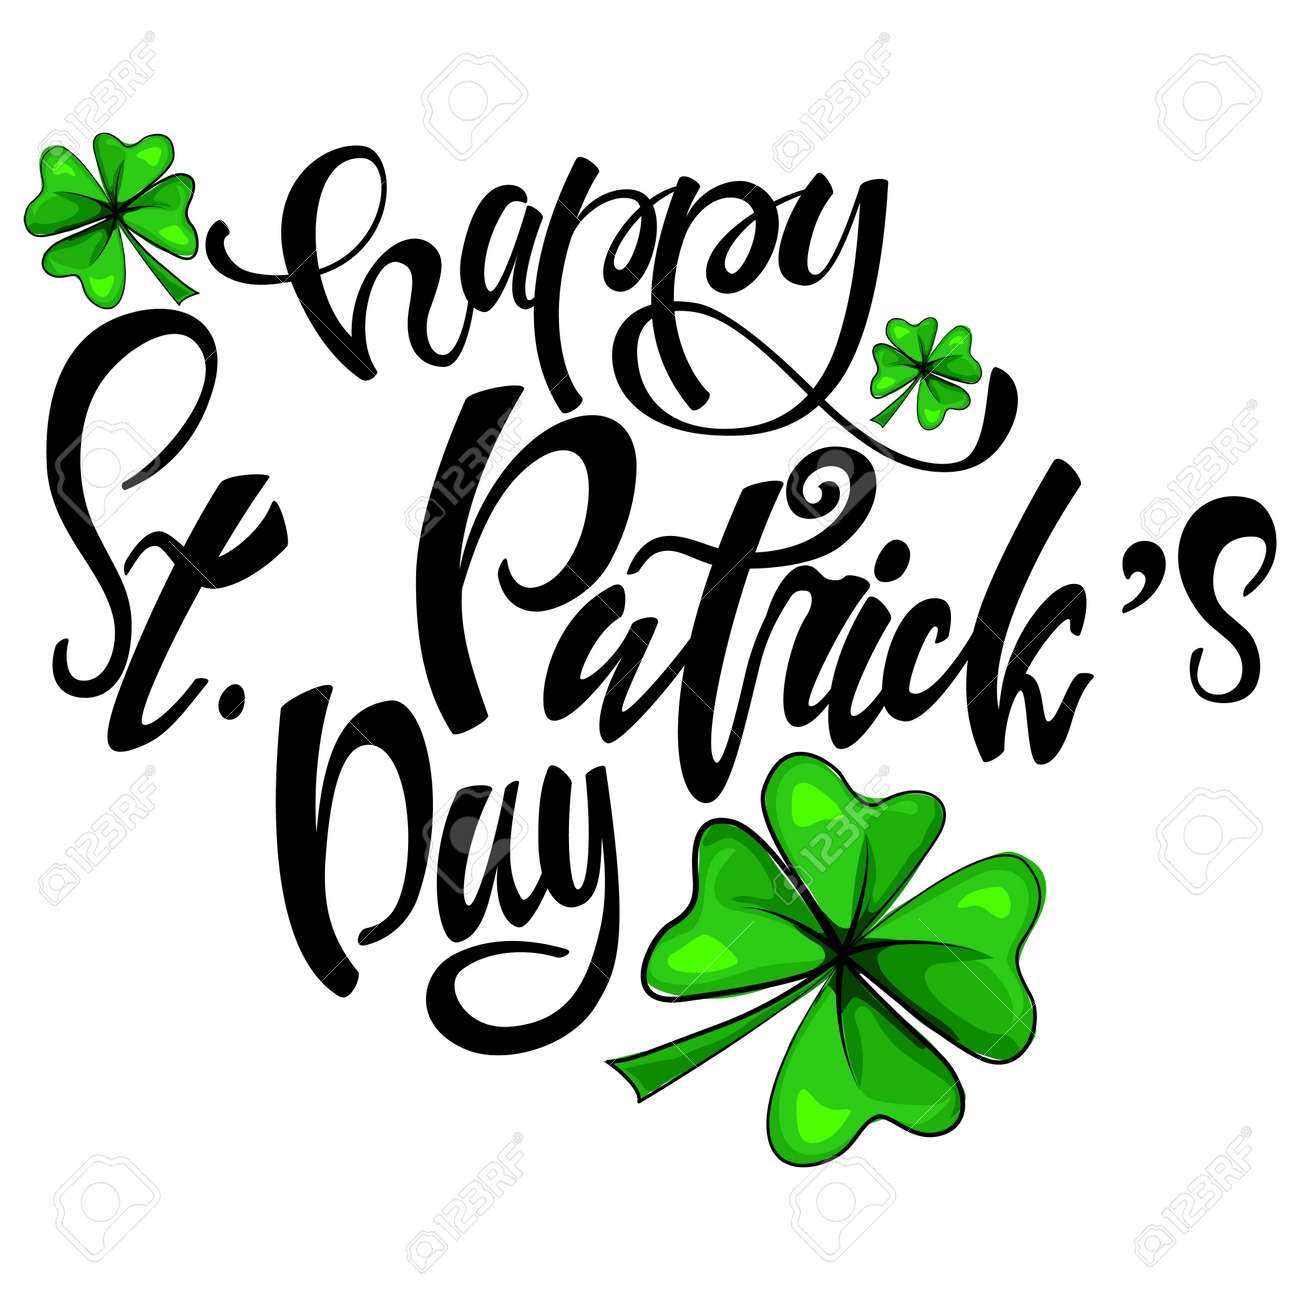 Happy St. Patrick's Day hand drawn text with four leaf clover. Vector illustration isolated on white background. - 94509694